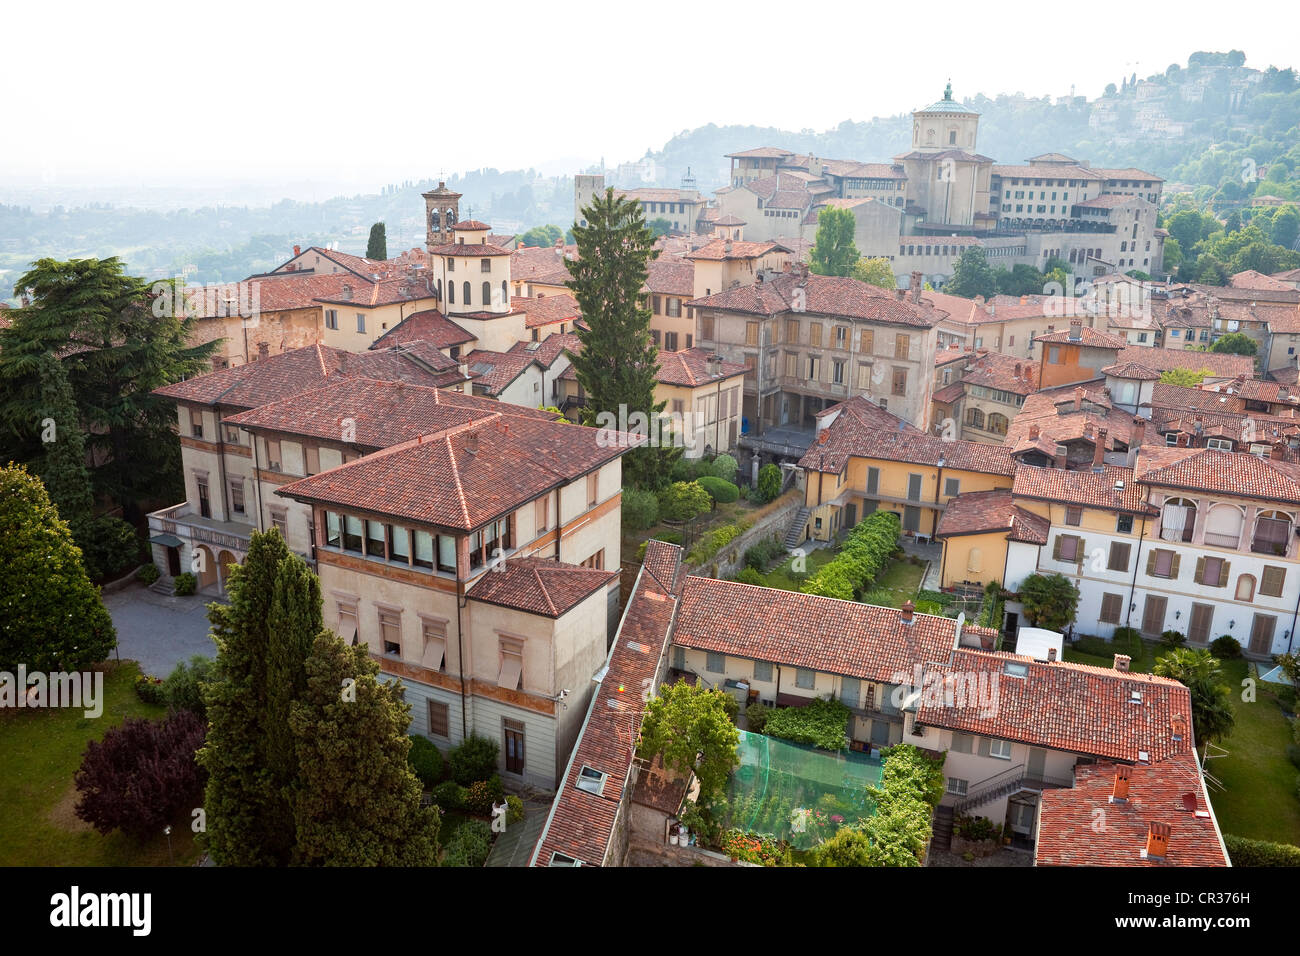 Italy, Lombardy, Bergamo, overview on the Citta Alta (upper citty) - Stock Image